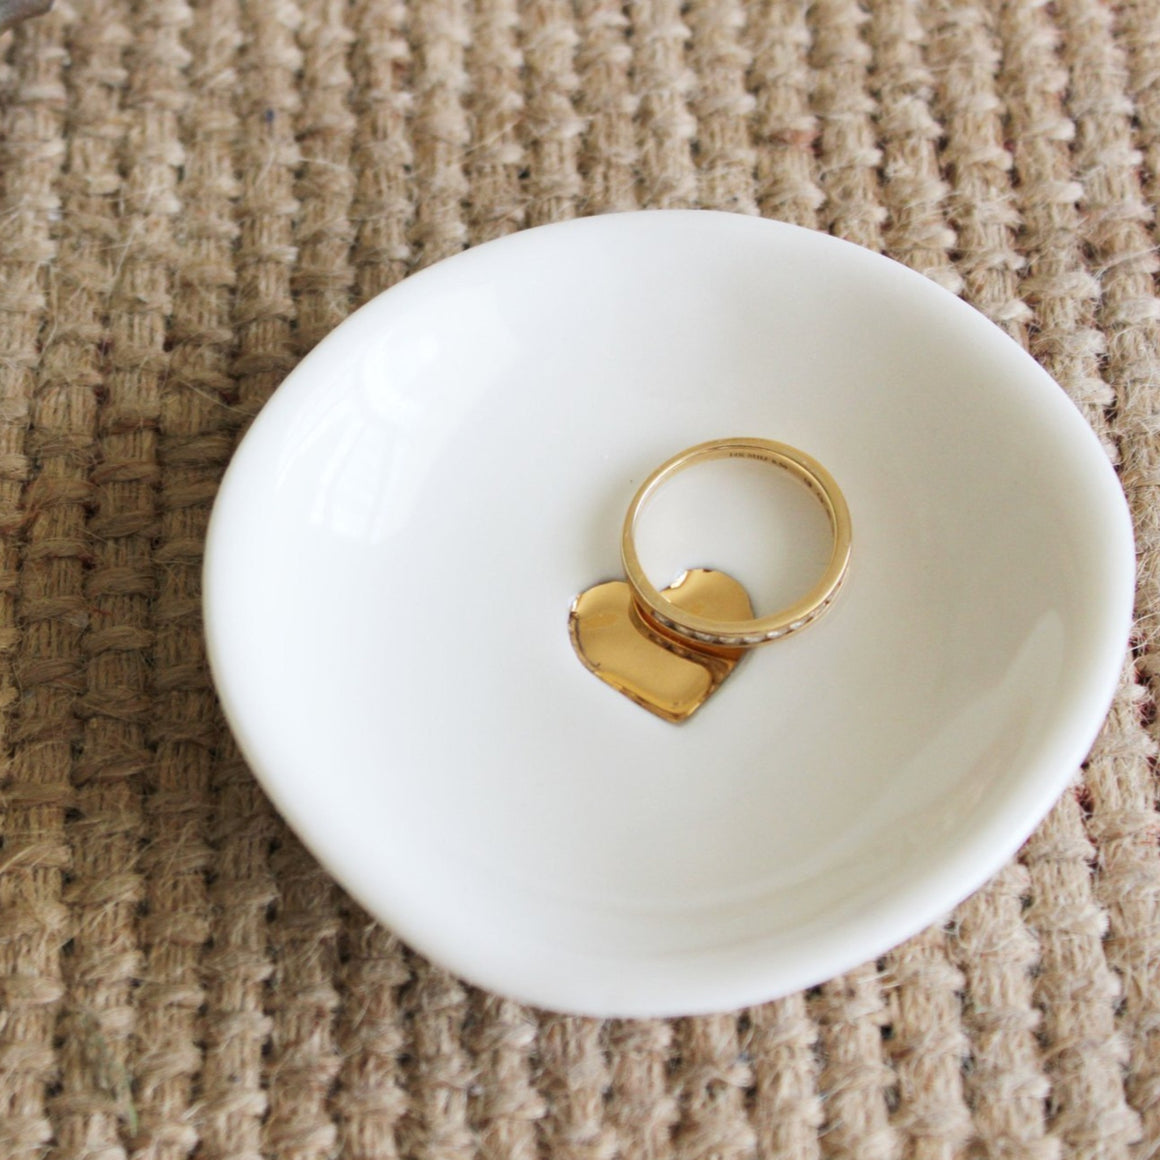 Tea 4 Two Art Jewellery Dish - Round Heart